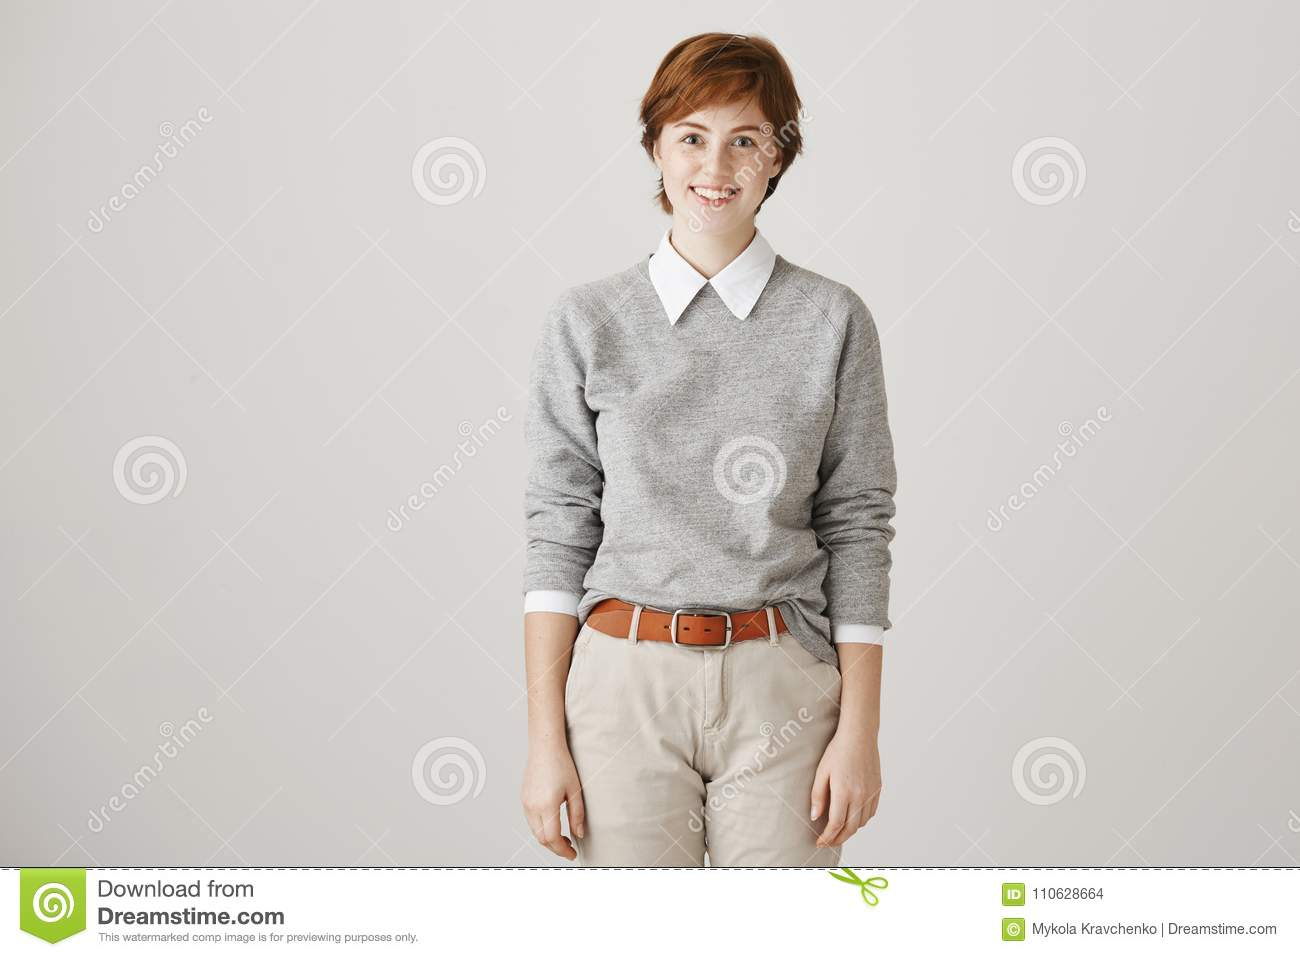 Cute beautiful redhead lesbian with short haircut and trendy boyish clothes  smiling at camera while being